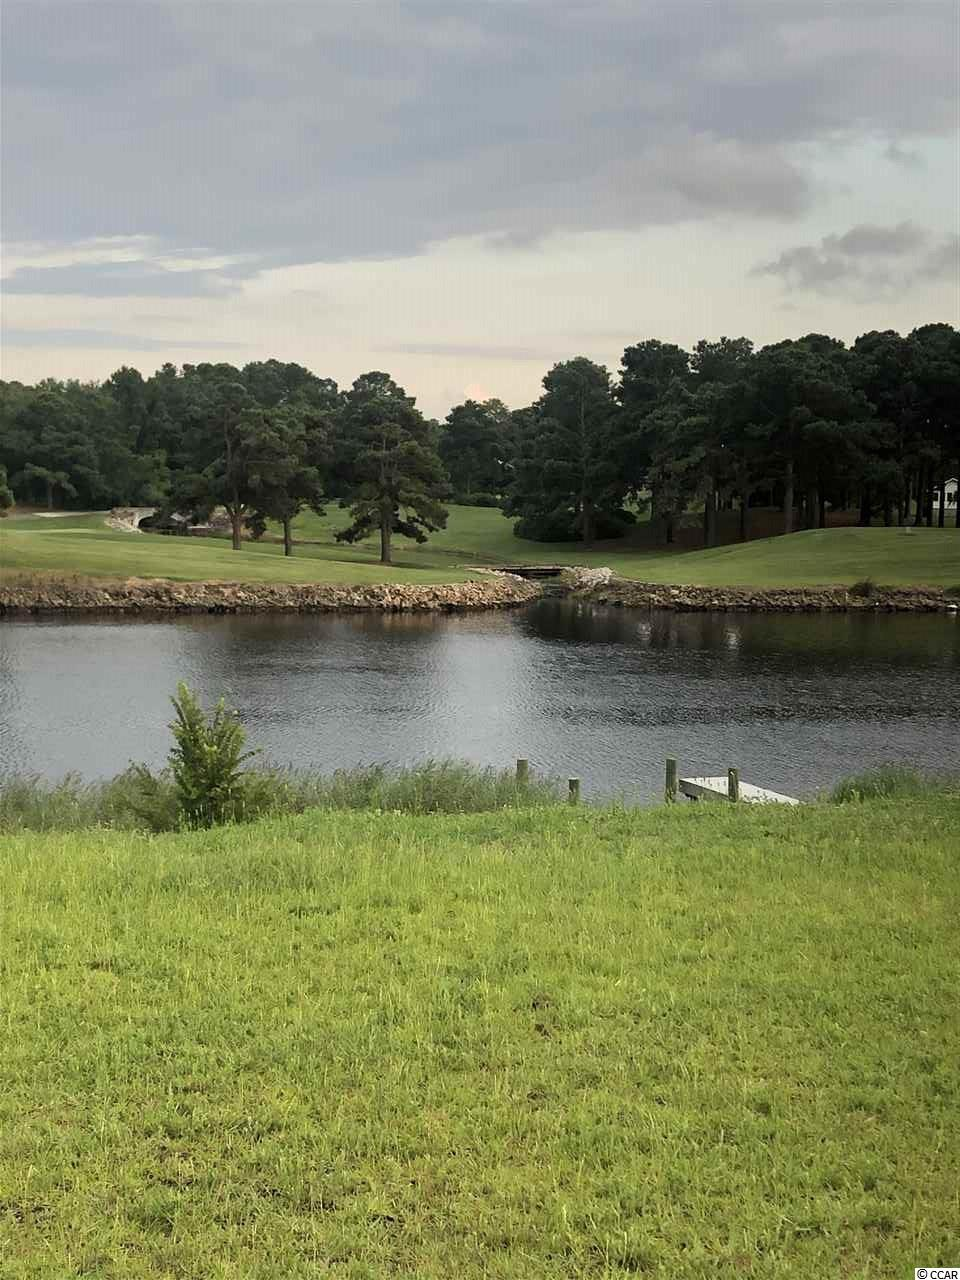 Build your dream home and enjoy the waterway living at its best! Wake up every morning with beautiful views of the waterway and sail boats passing by. No time frame to build and bring your own builder. Waterway Palms Plantation is one of Myrtle Beach's premier waterway communities offering resort style amenities, planned neighborhood activities for kids, adults and the whole family. Waterway Palms is located in Carolina Forest one of the best school systems in Horry County.